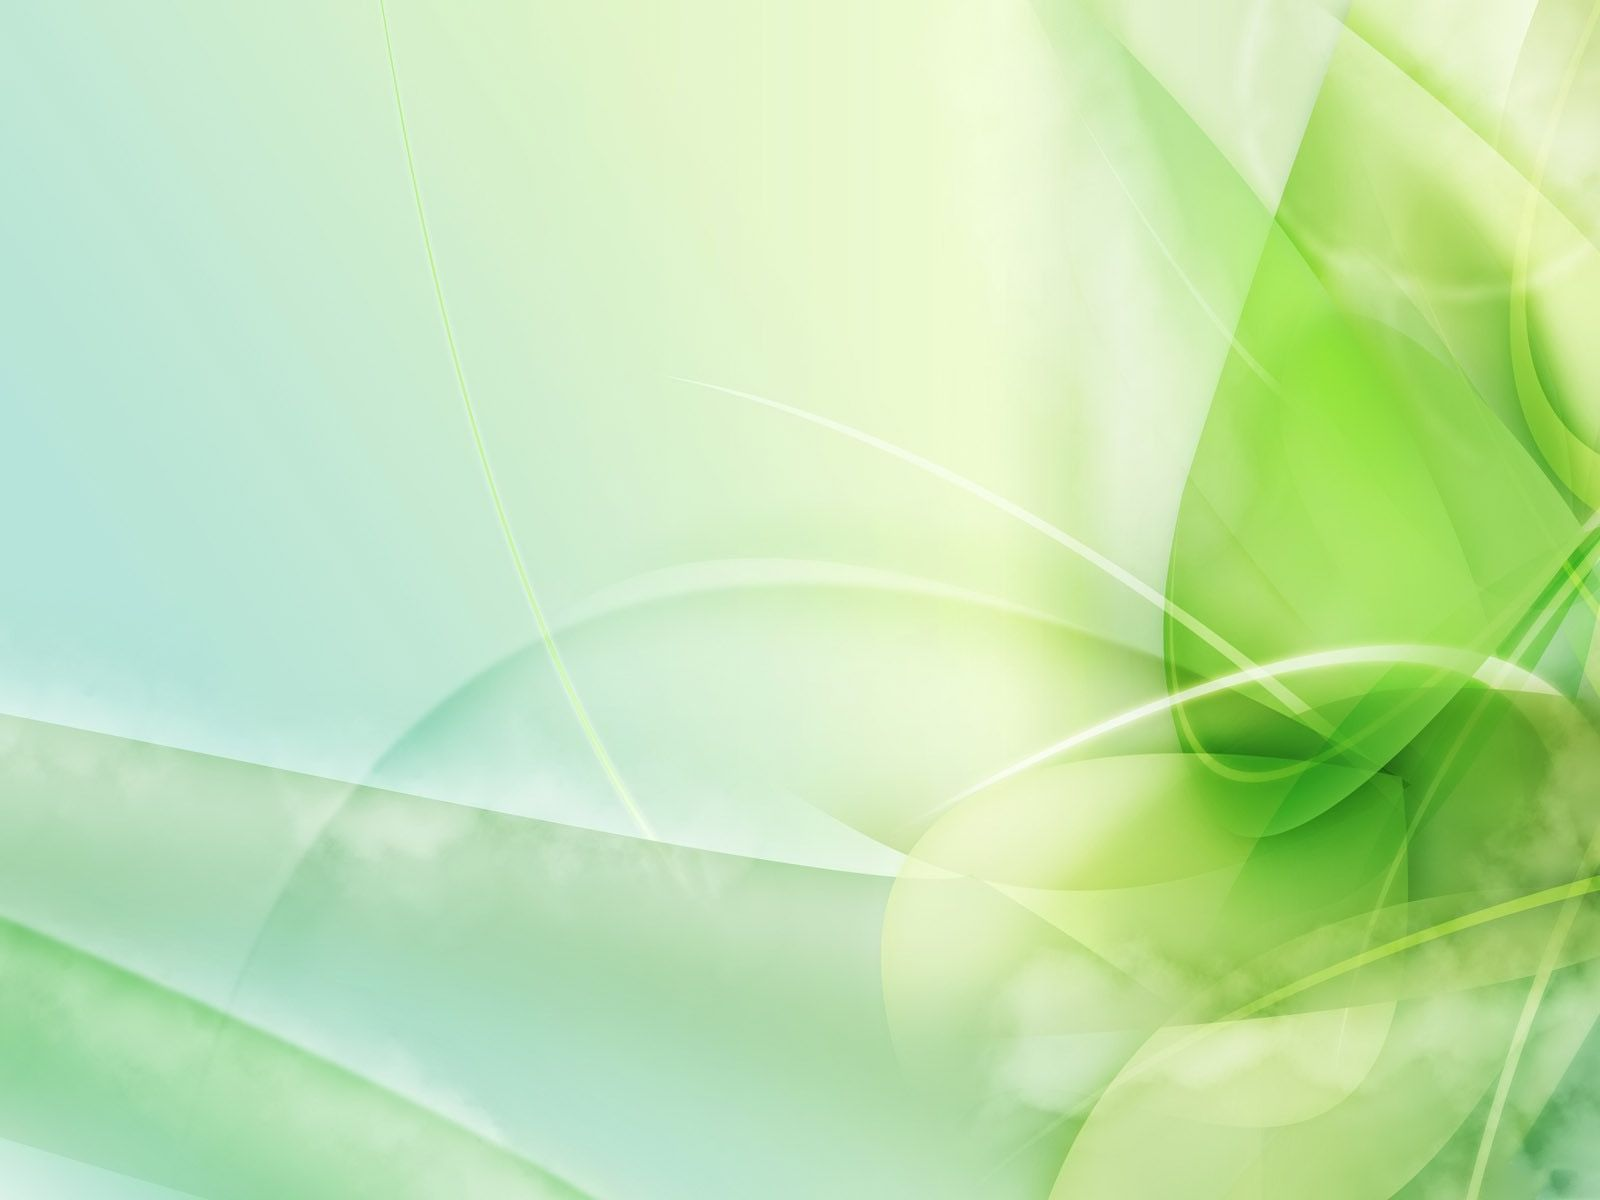 Cool Green Backgrounds Vectors Download Free Vector Art